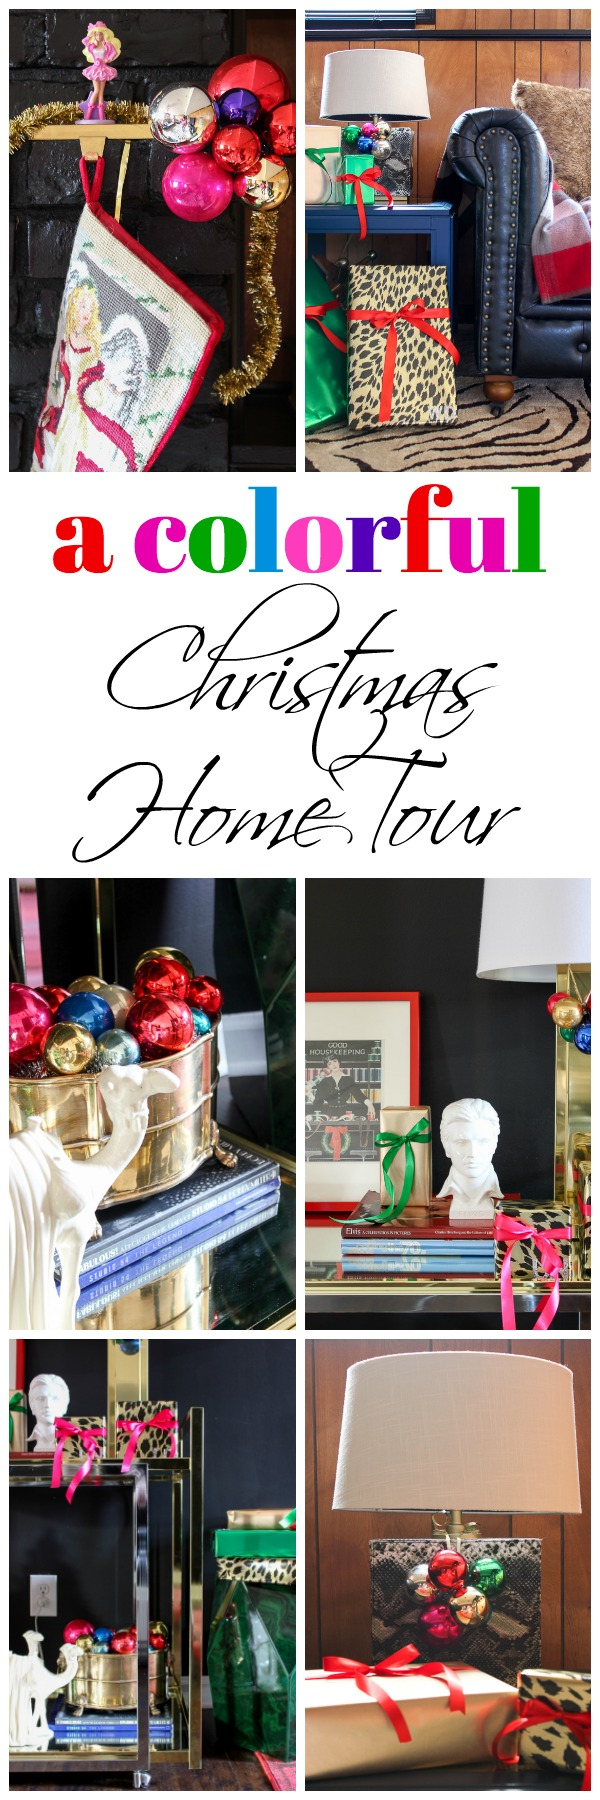 A Colorful Christmas Home Tour